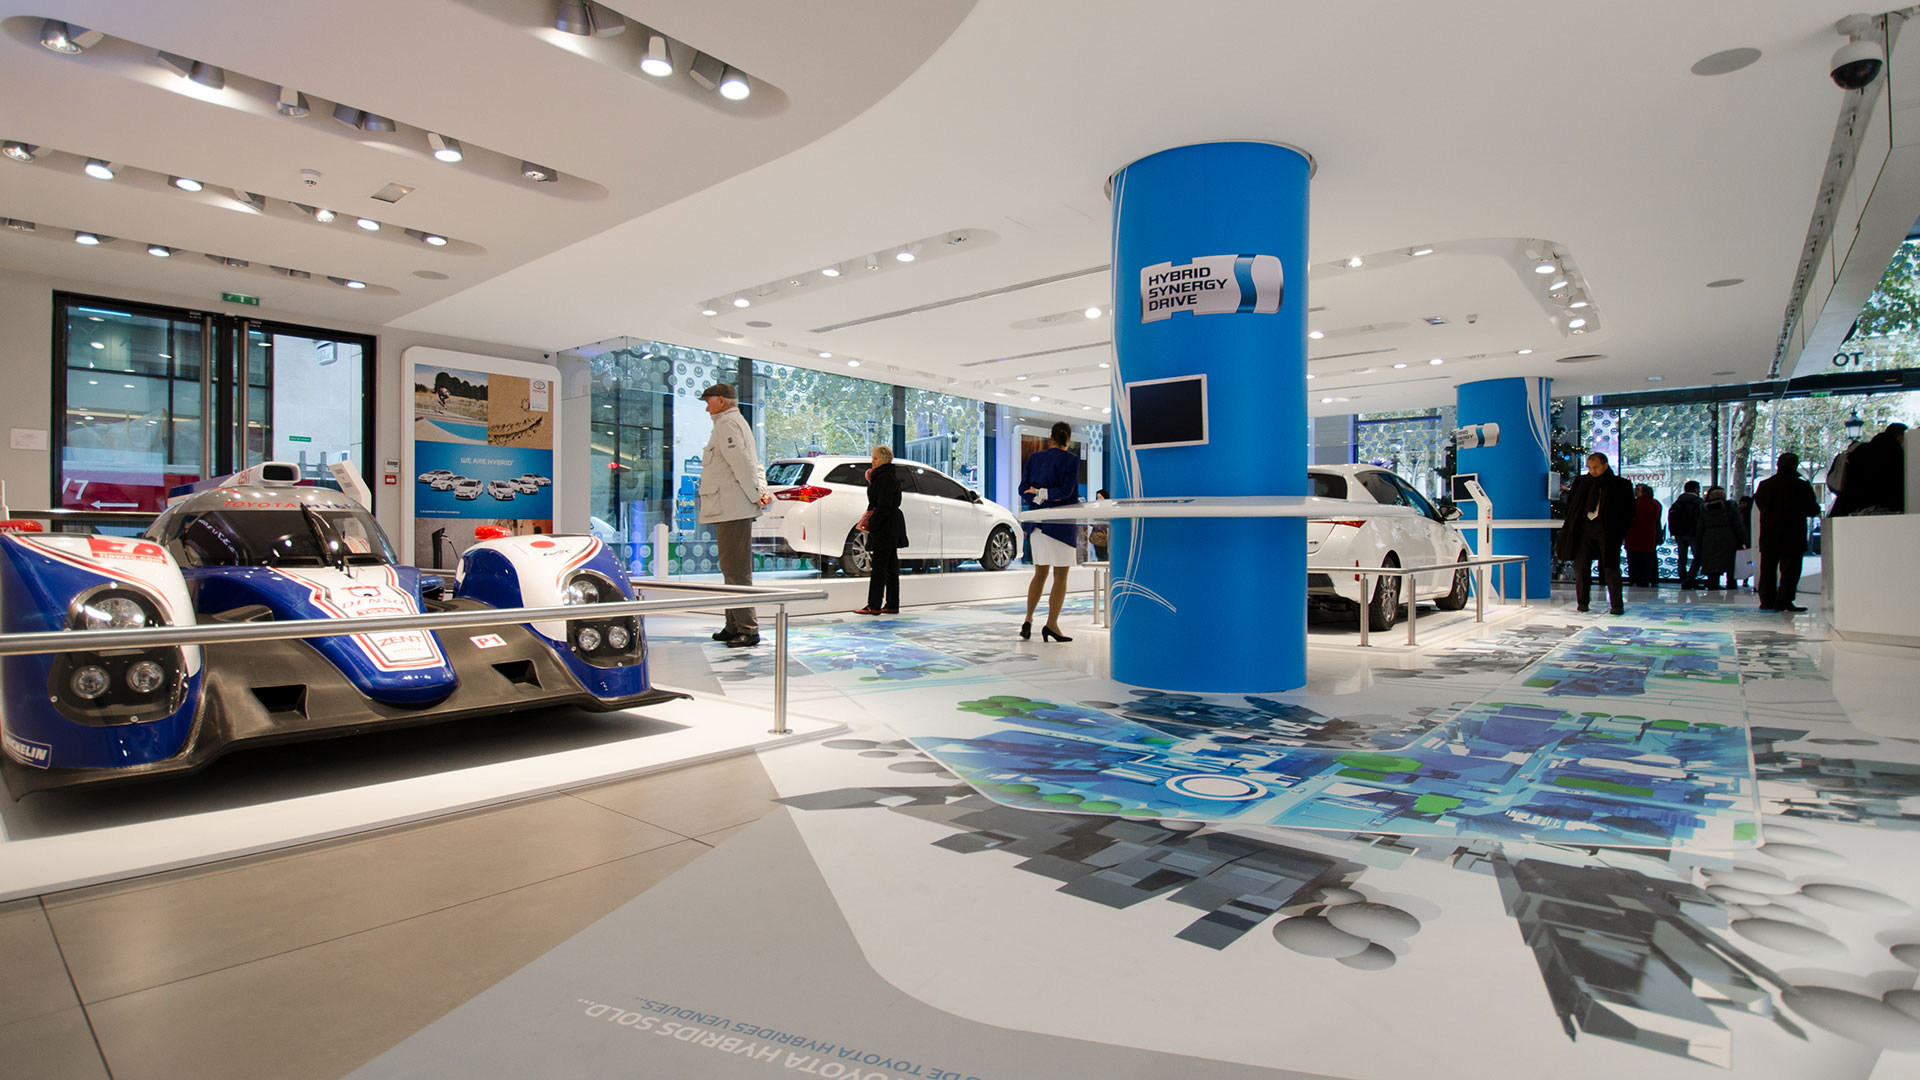 Toyota Le Rendez Vous Paris Showroom Hybrid Ausstellung